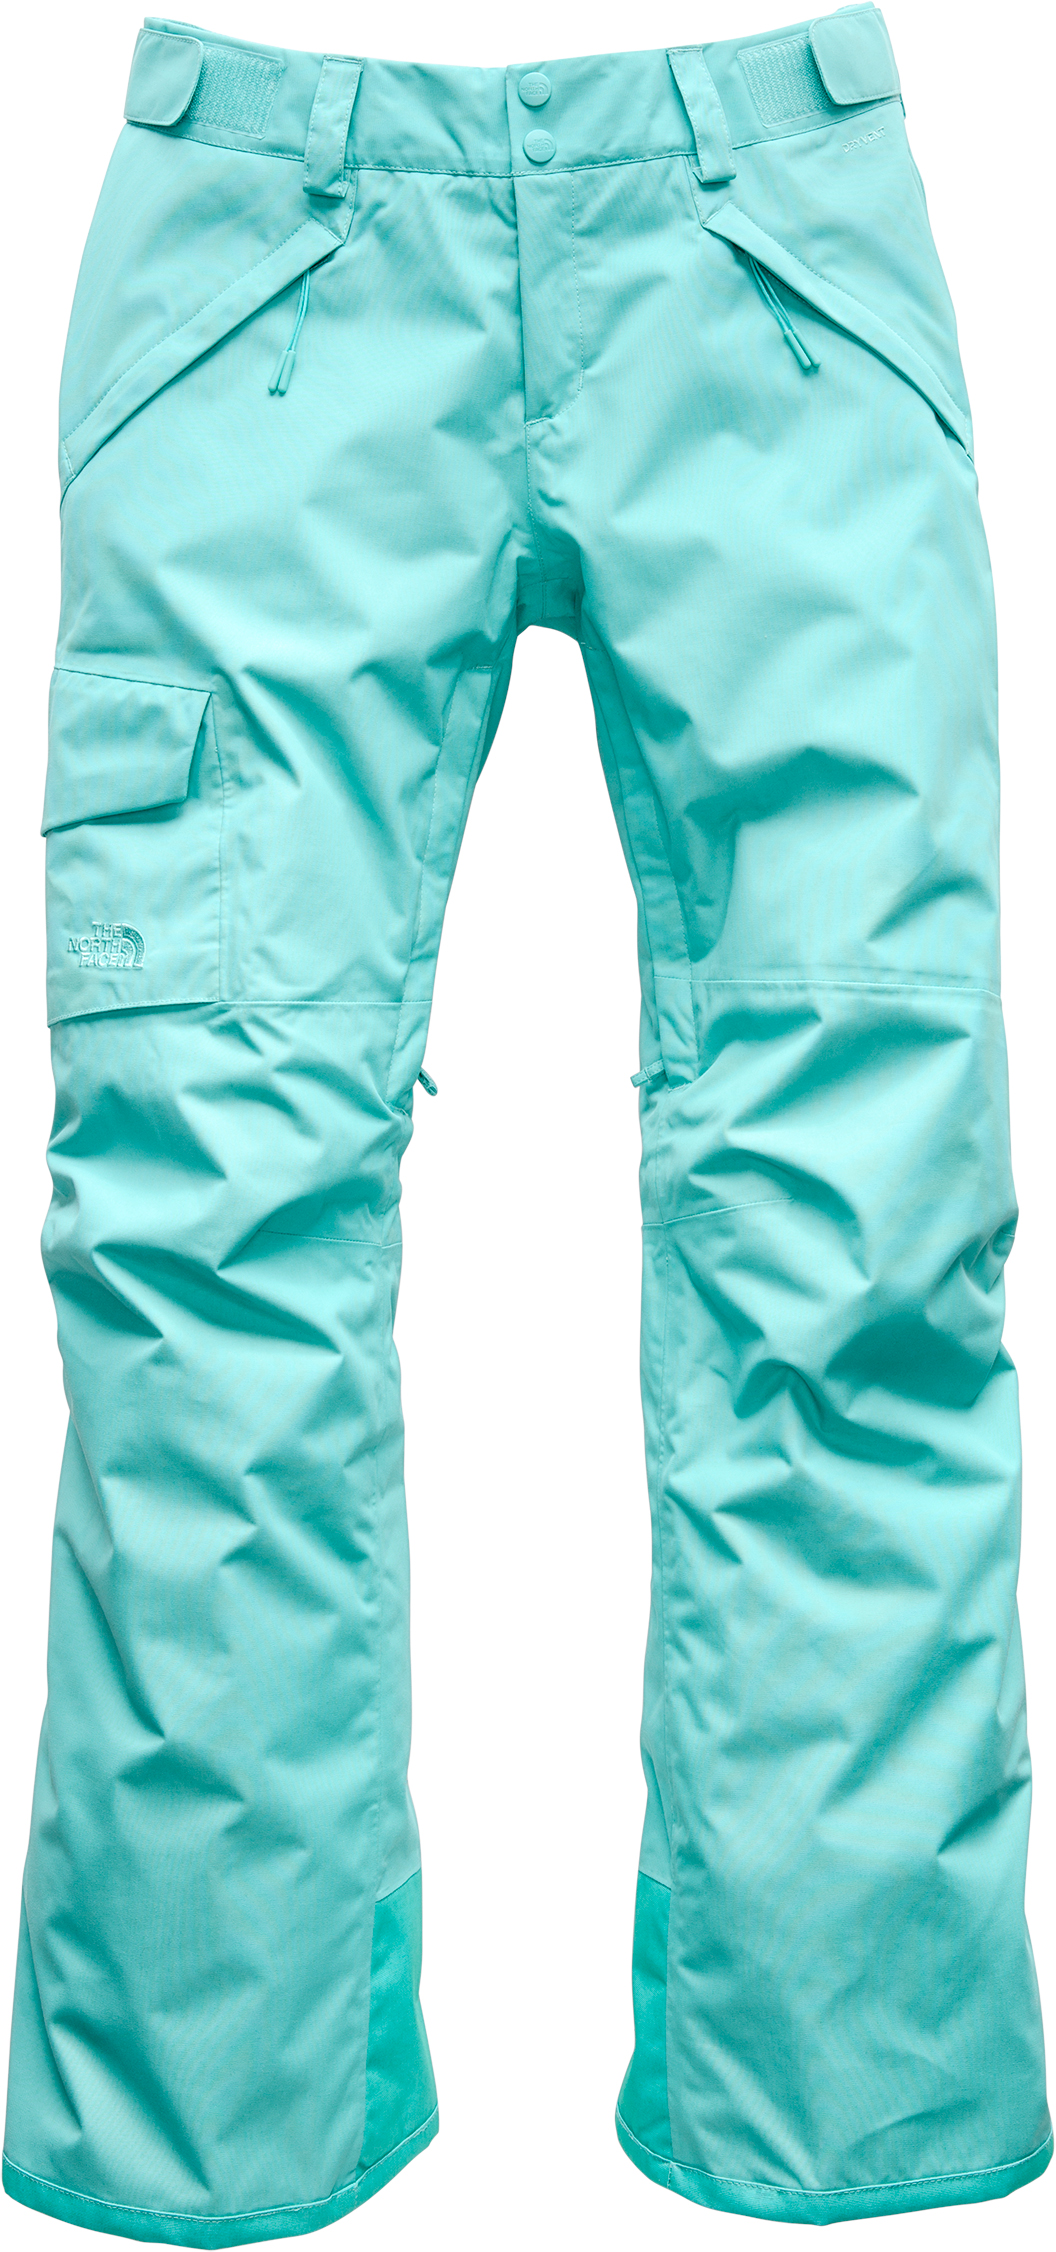 8d7661d730e The North Face Freedom Insulated Pants - Women s